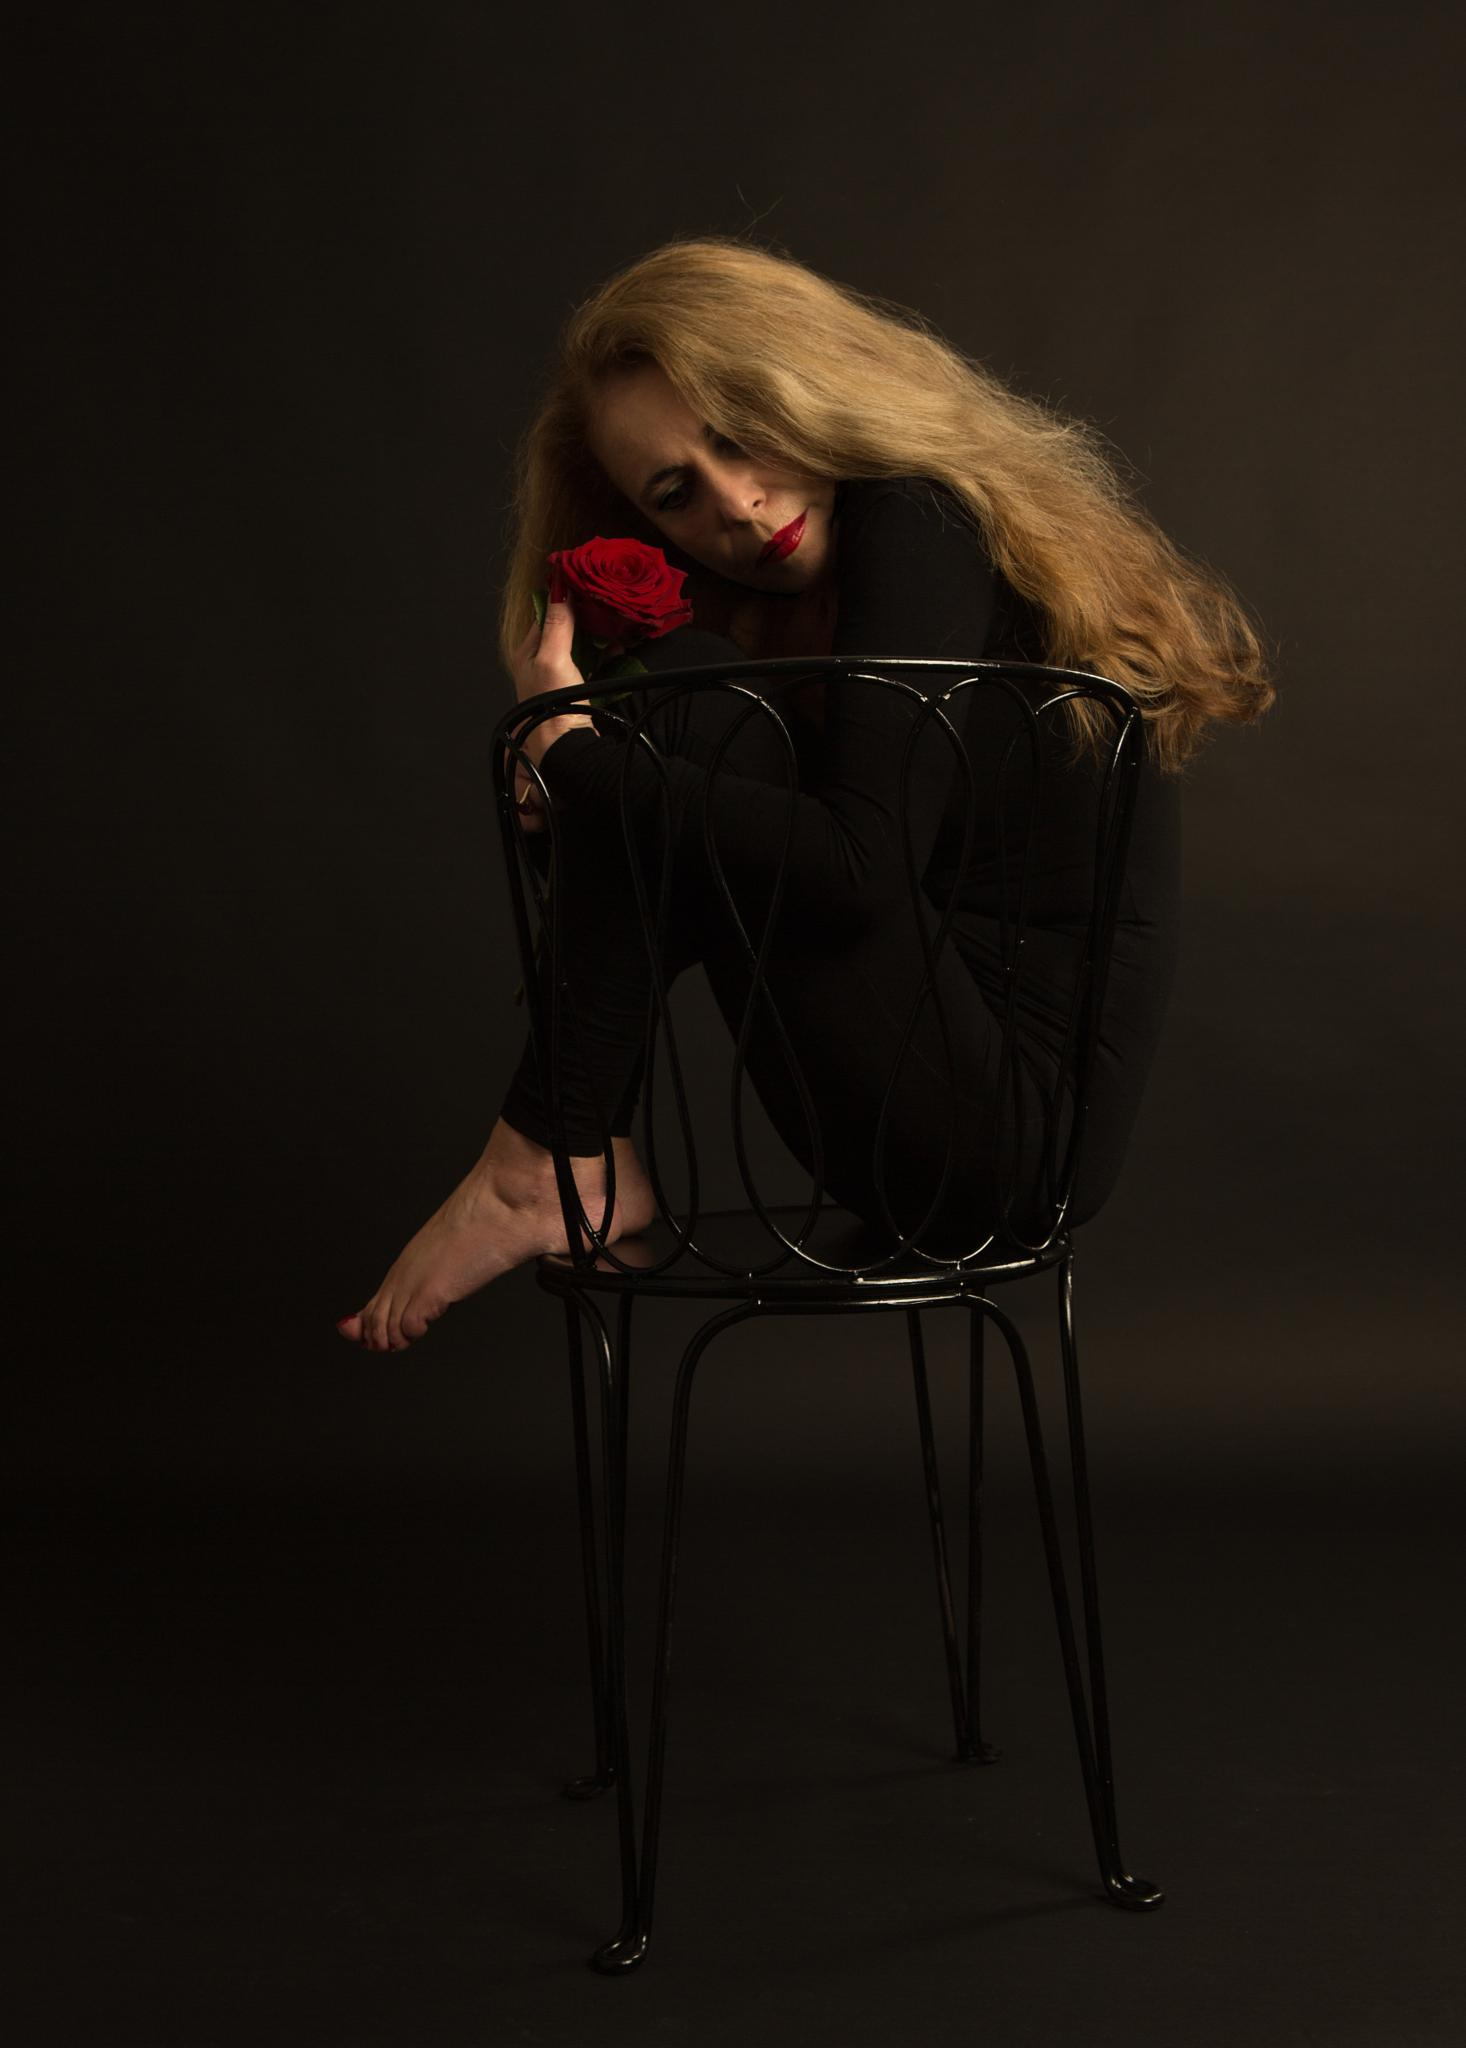 Simona on a chair, in a black dancing dress by NilsAxelBraathen